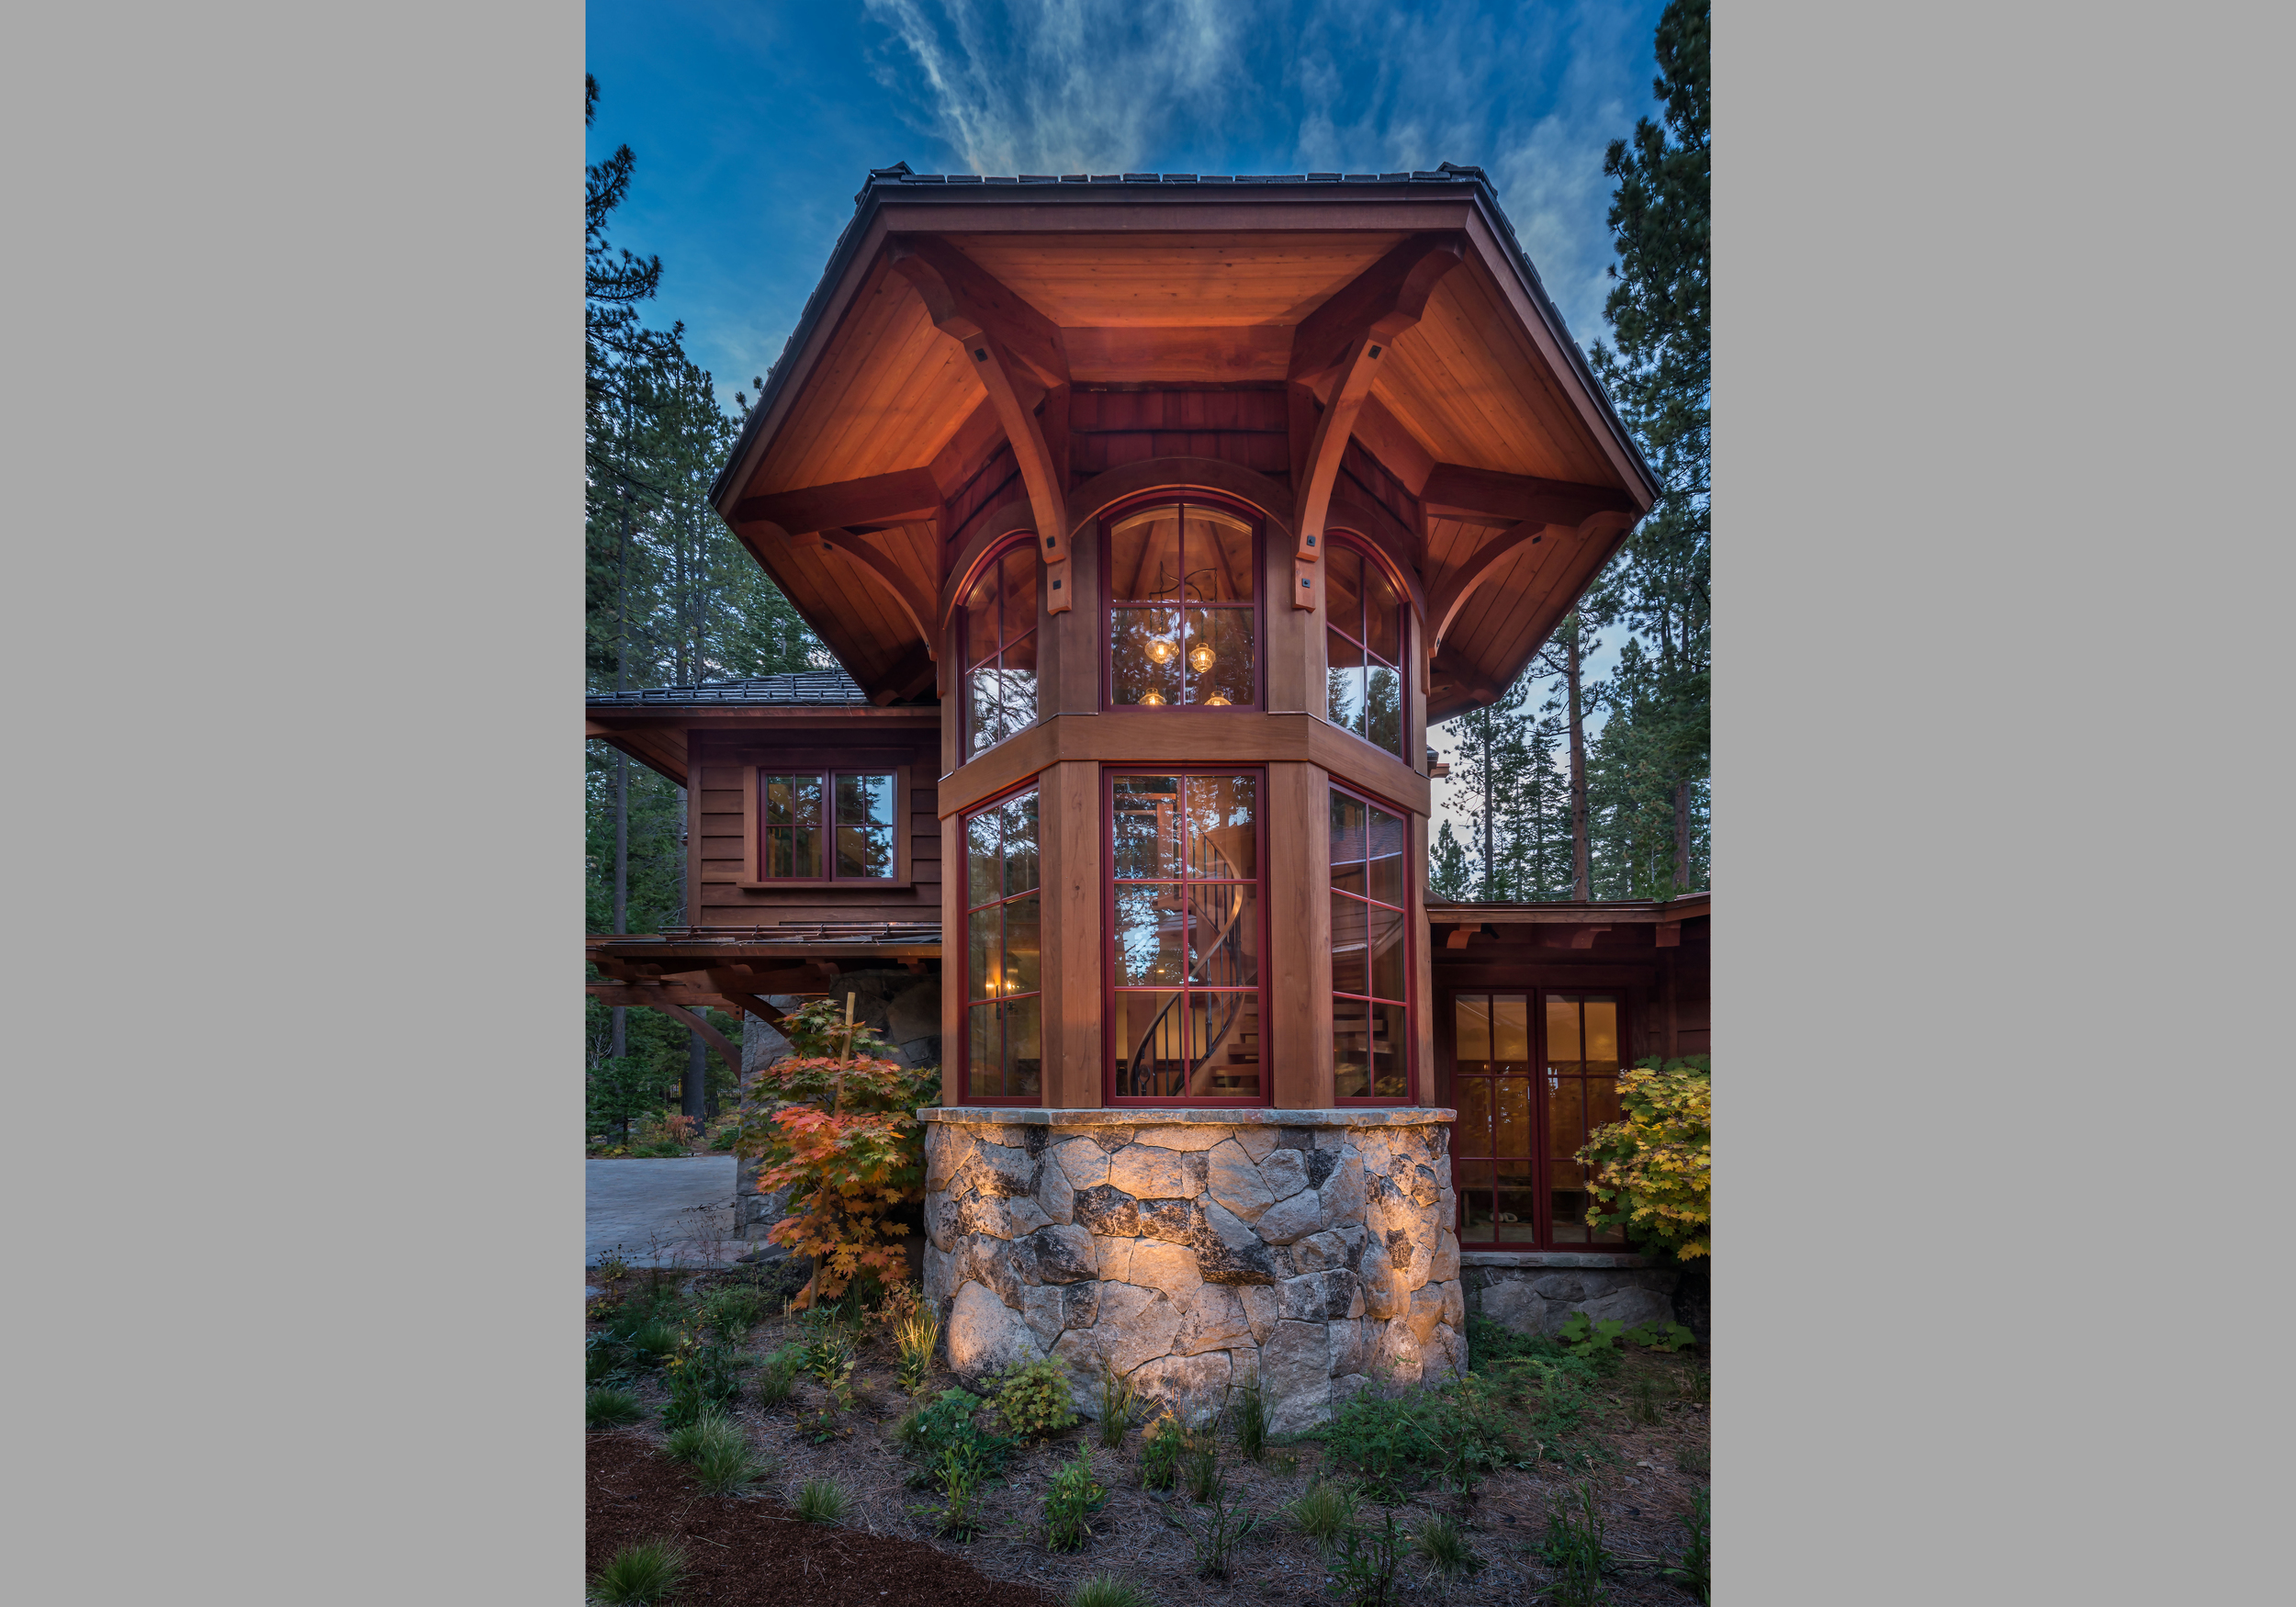 Contractor: Jim Morrison Construction   Photography: Vance Fox Square Footage: 4,345 sf Features: Inglenook, Exhibition Wine Room, Turret Staircase, Natural Creek with Bridge, Lake Front Terrace + Firepit bedrooms: 4 bathrooms: 4.5